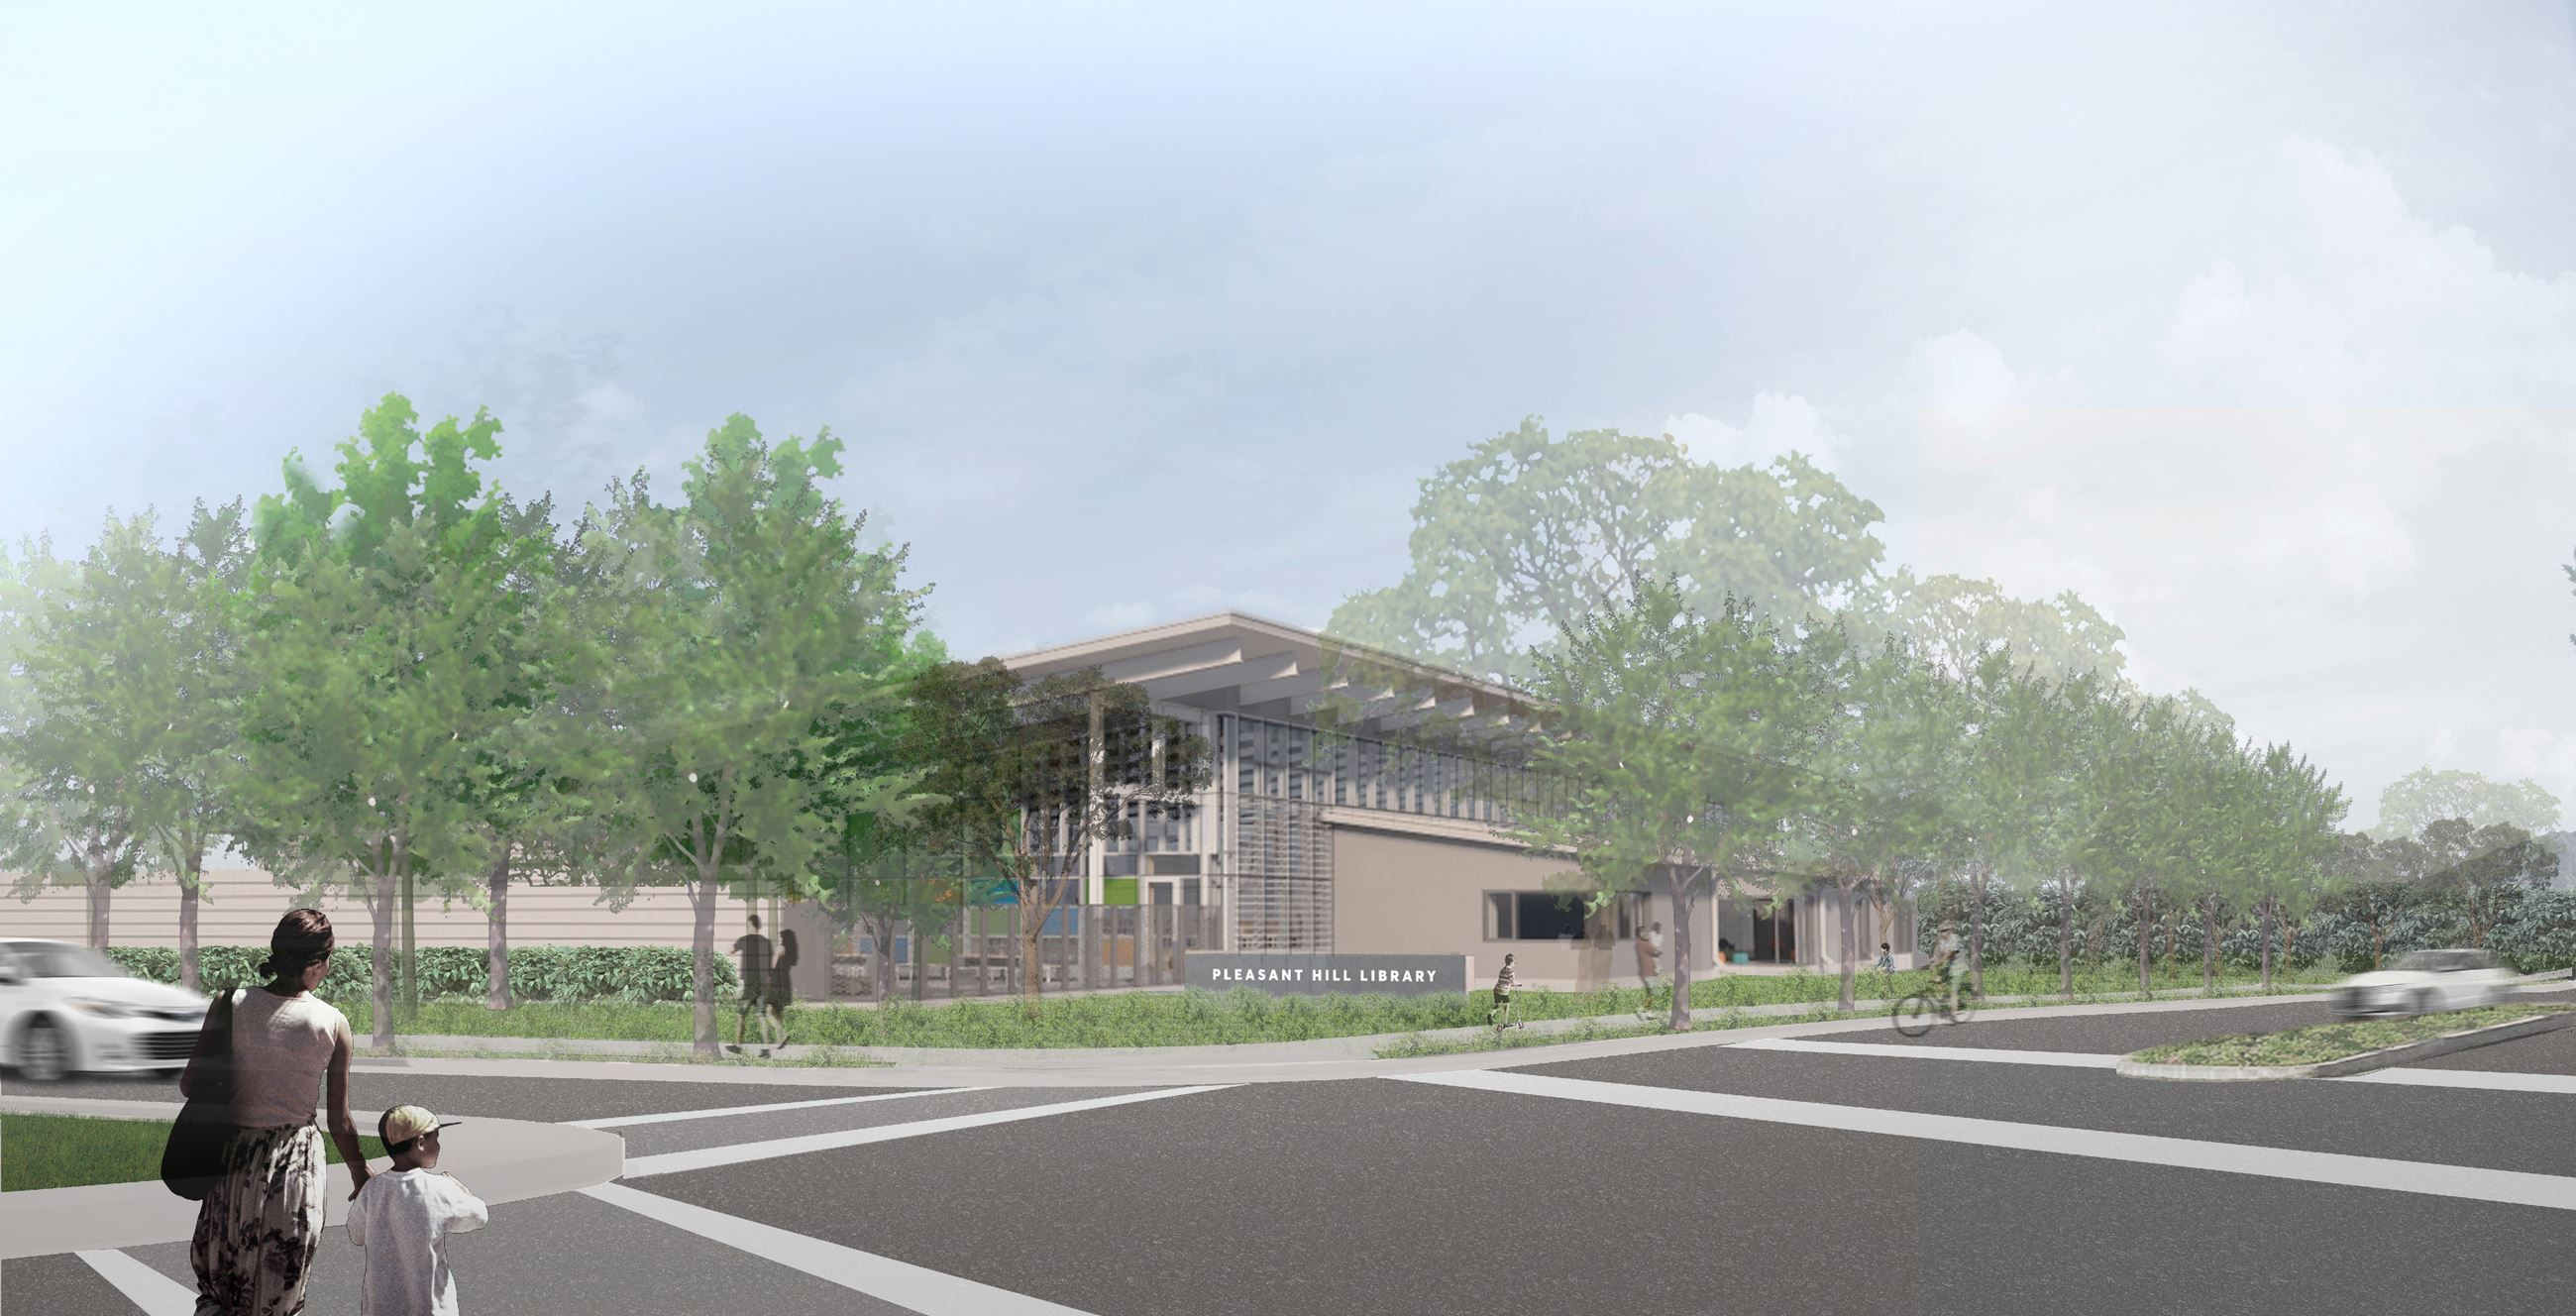 Rendering of new Pleasant Hill Library - Exterior from Monticello-Oak Park intersection